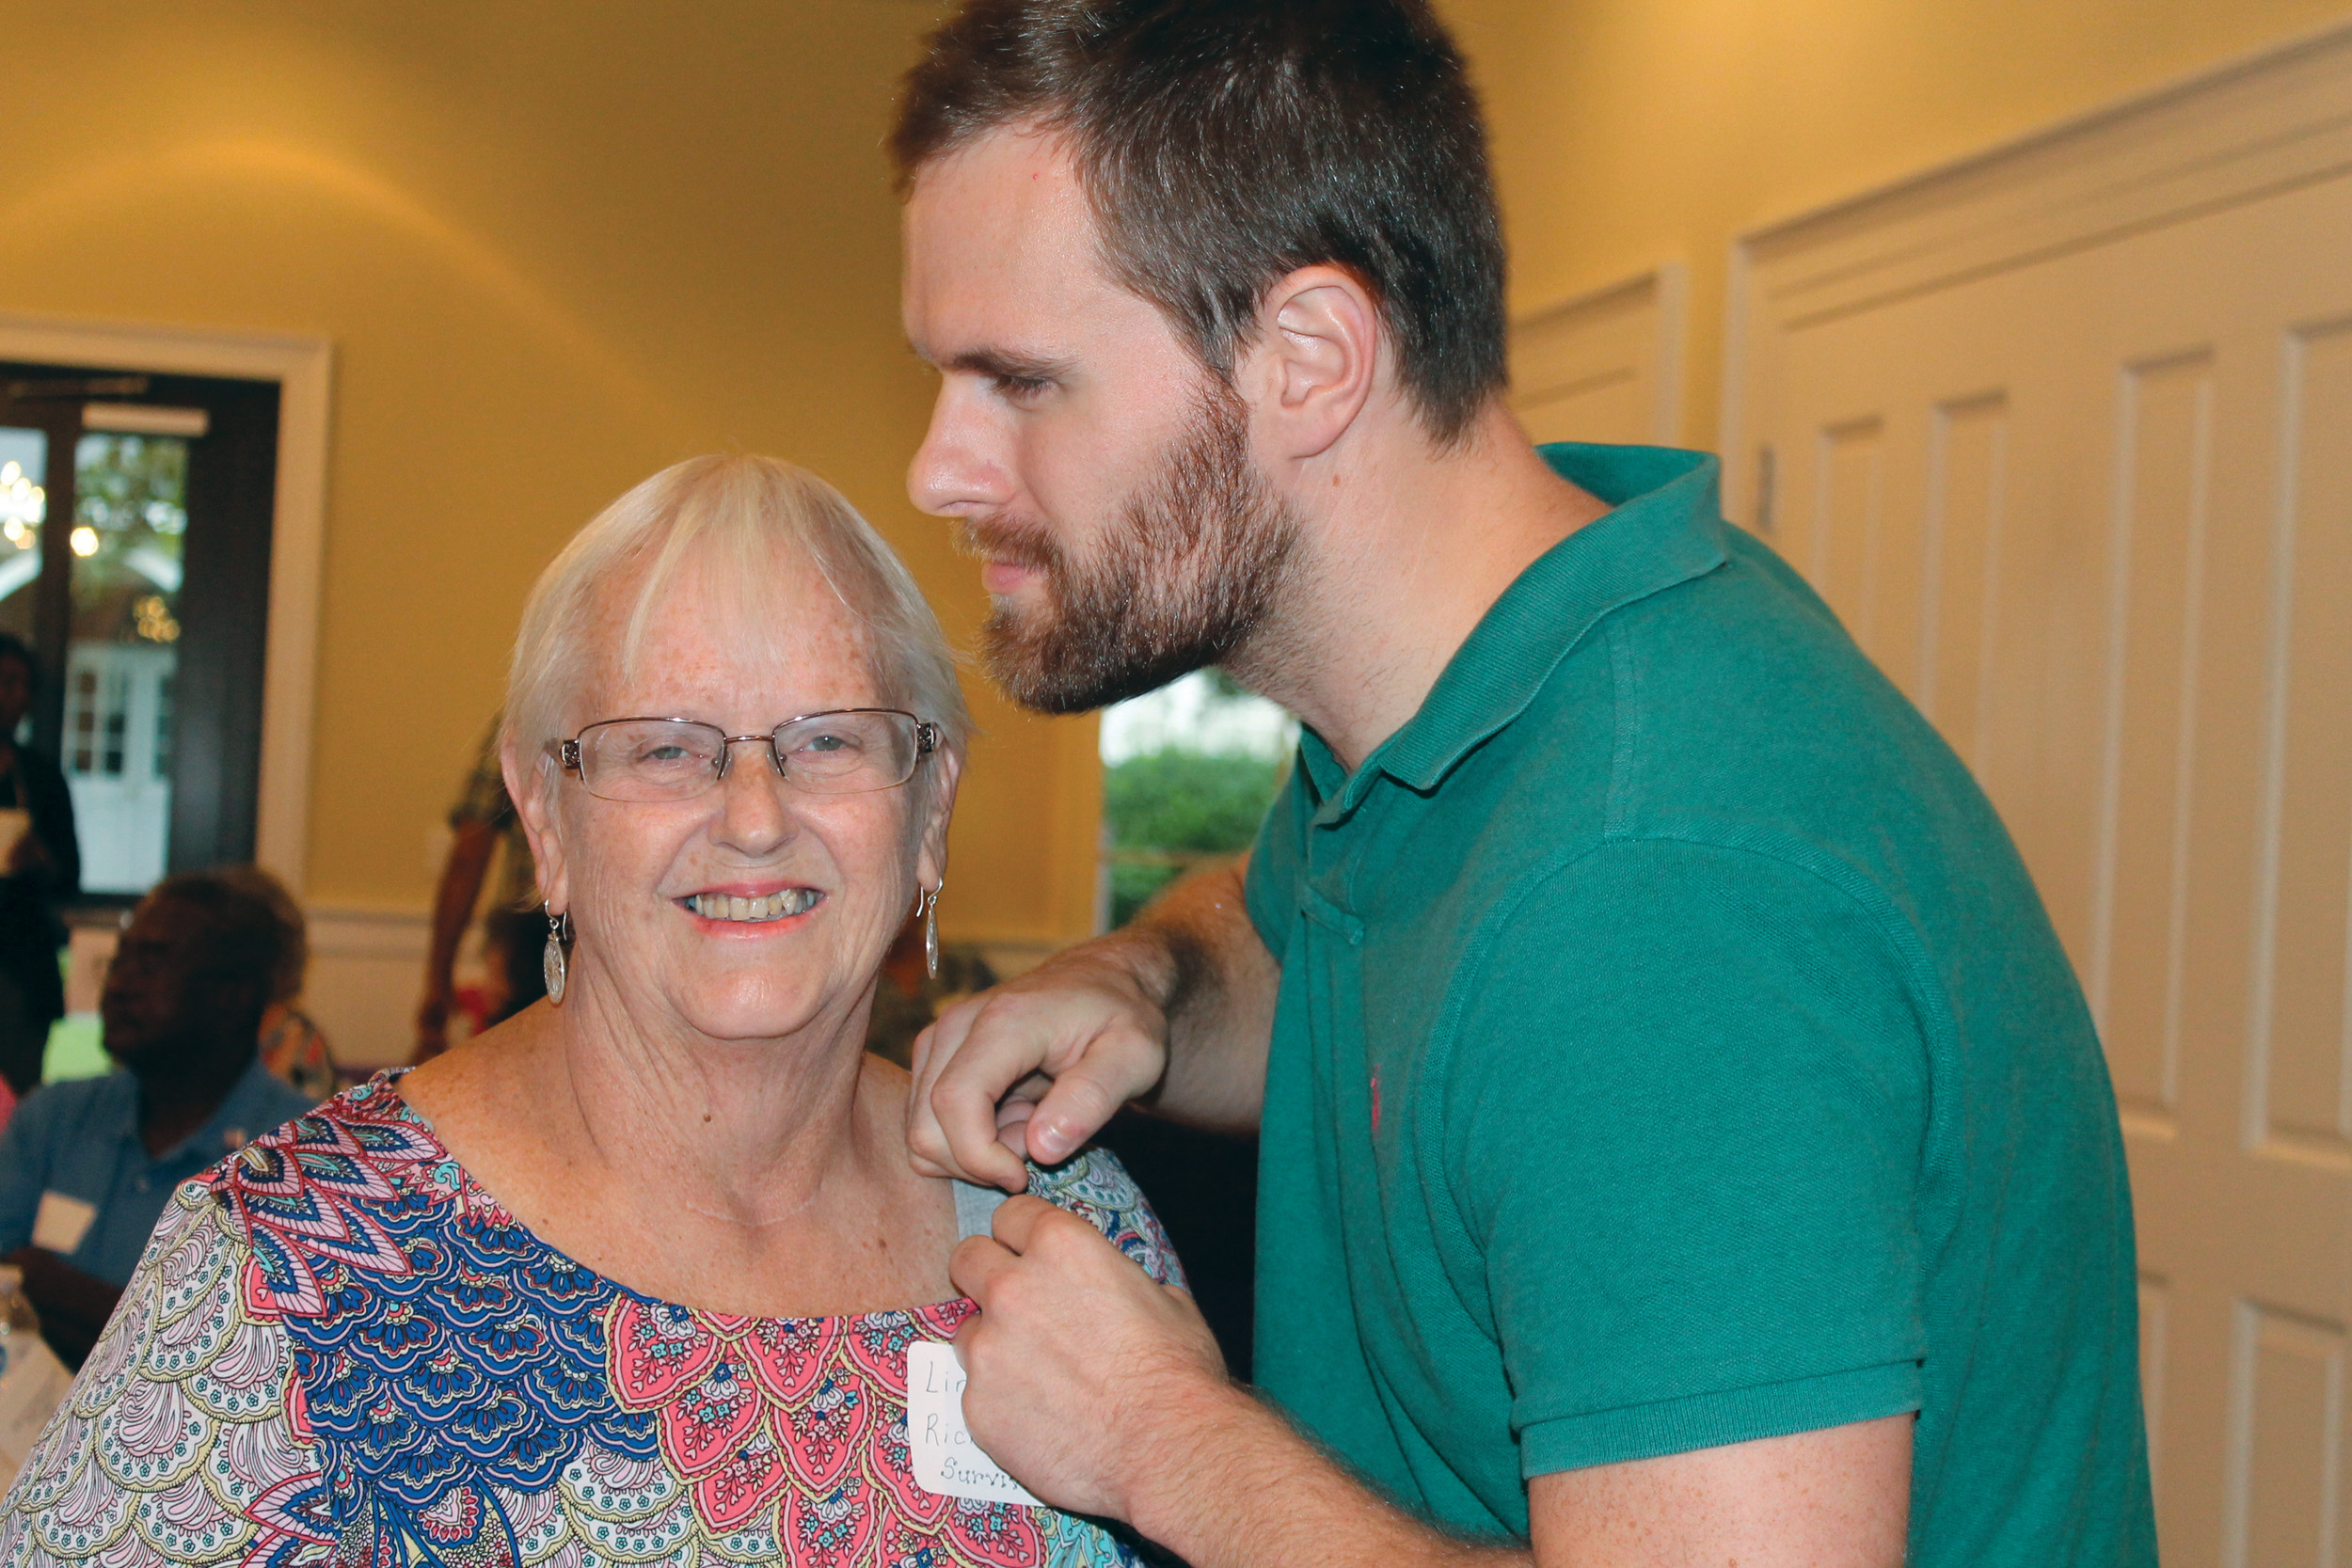 Linda Richburg, a cancer survivor, and her son, Dave, participated in the Survivor Pinning Ceremony at the Celebrate Life Survivor Social held Aug. 31 at Manning United Methodist Church. More than 100 caregivers and guests attended the social that was sponsored by the 2018 Clarendon County Relay Committee and American Cancer Society.